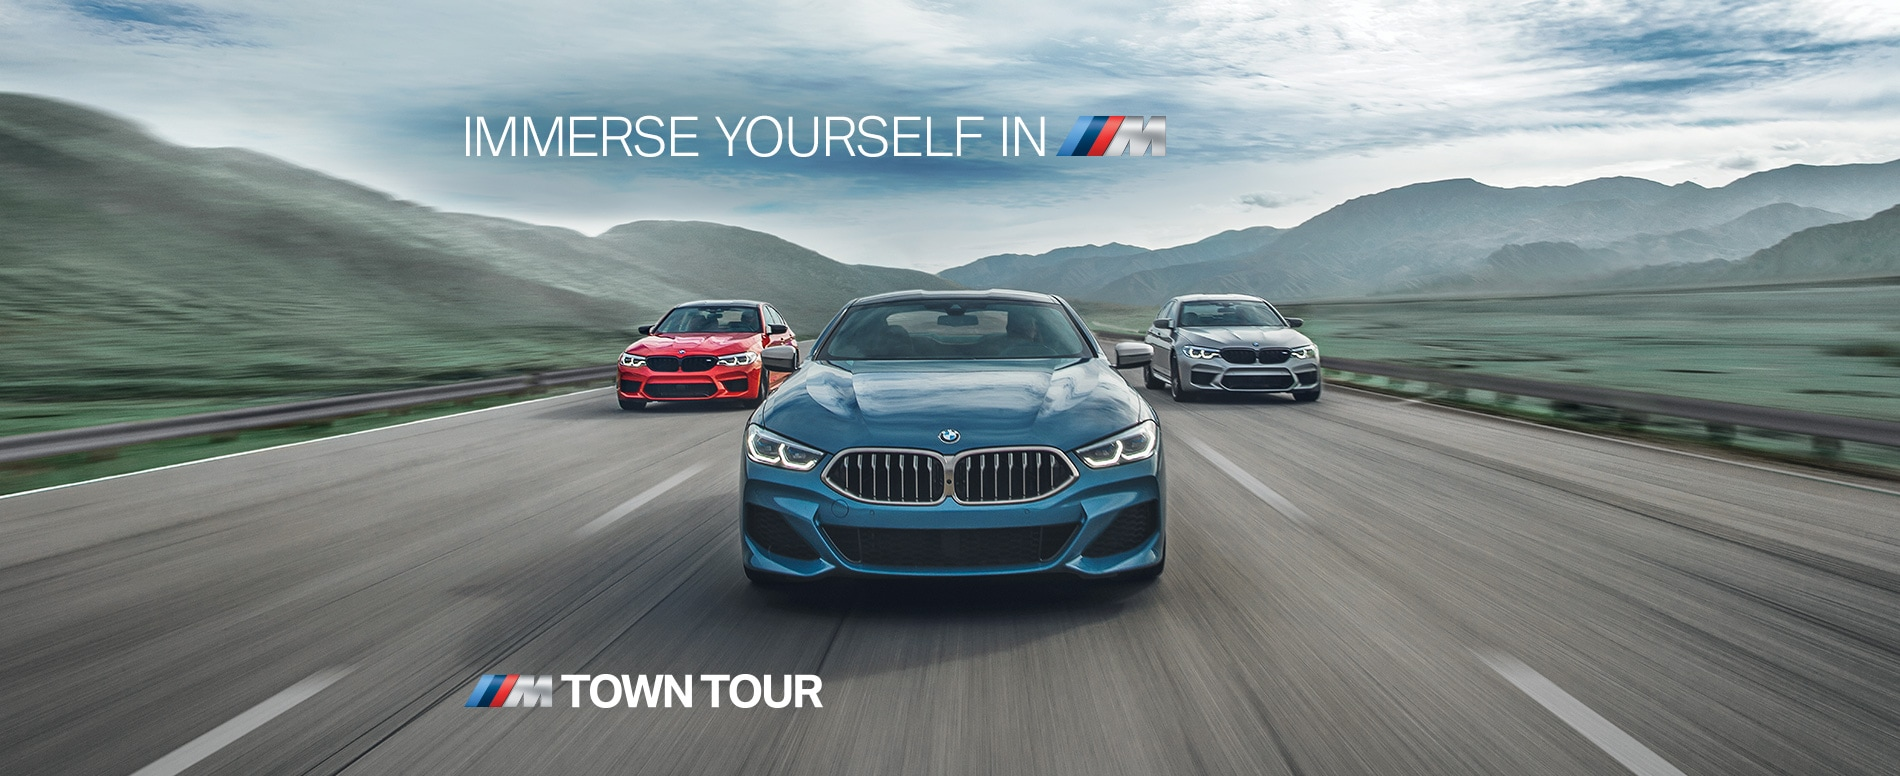 Bmw Automobile Dealer In Knoxville Grayson Bmw